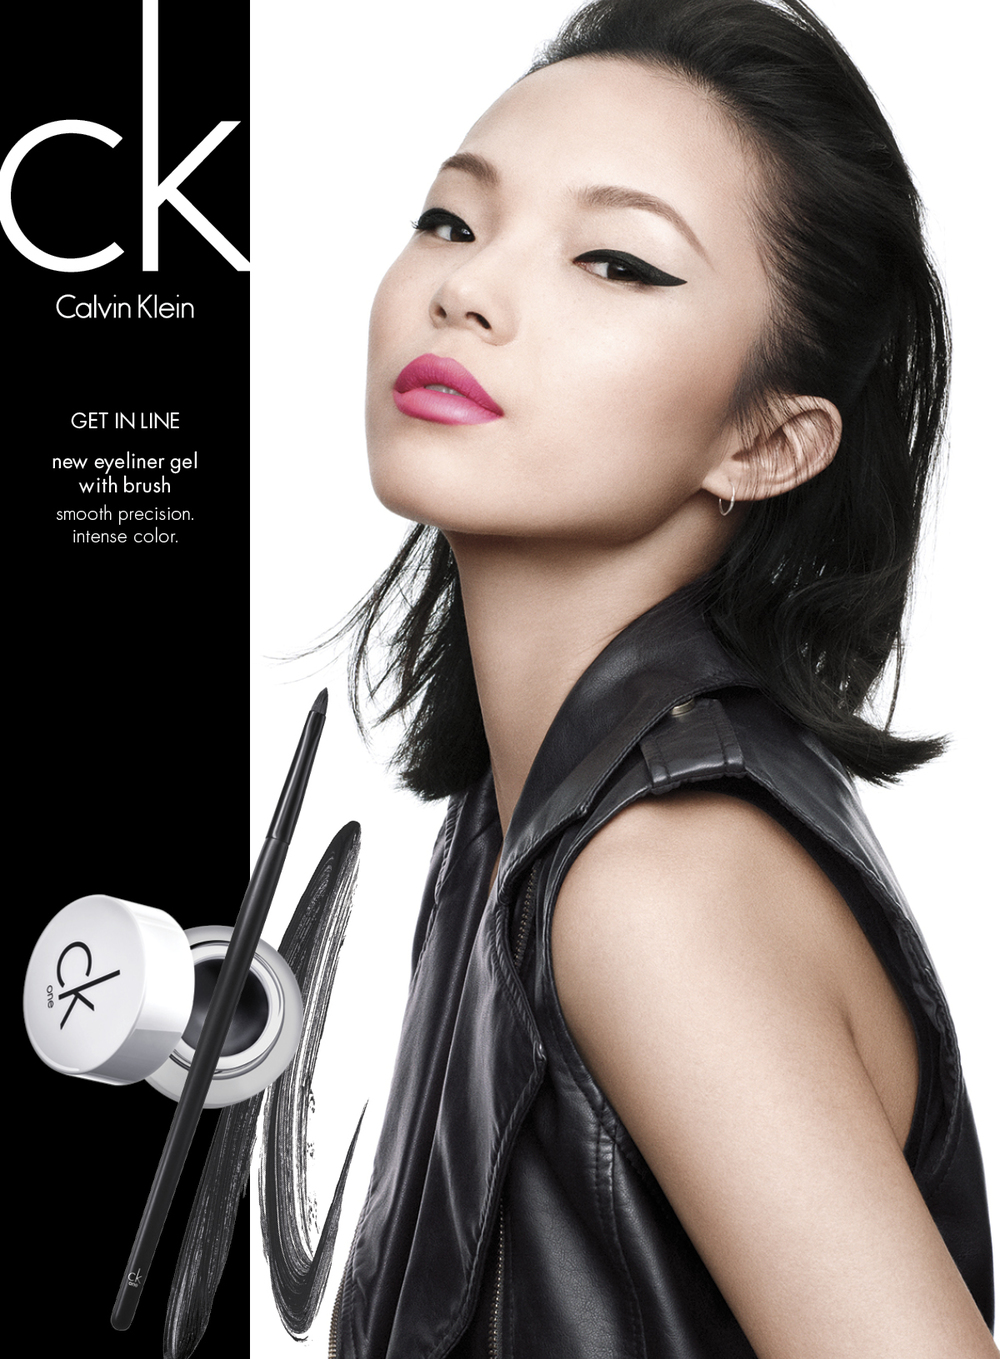 CK COLOR SINGLE PAGE 8%22X10.875%22_EYELINER GEL.jpg